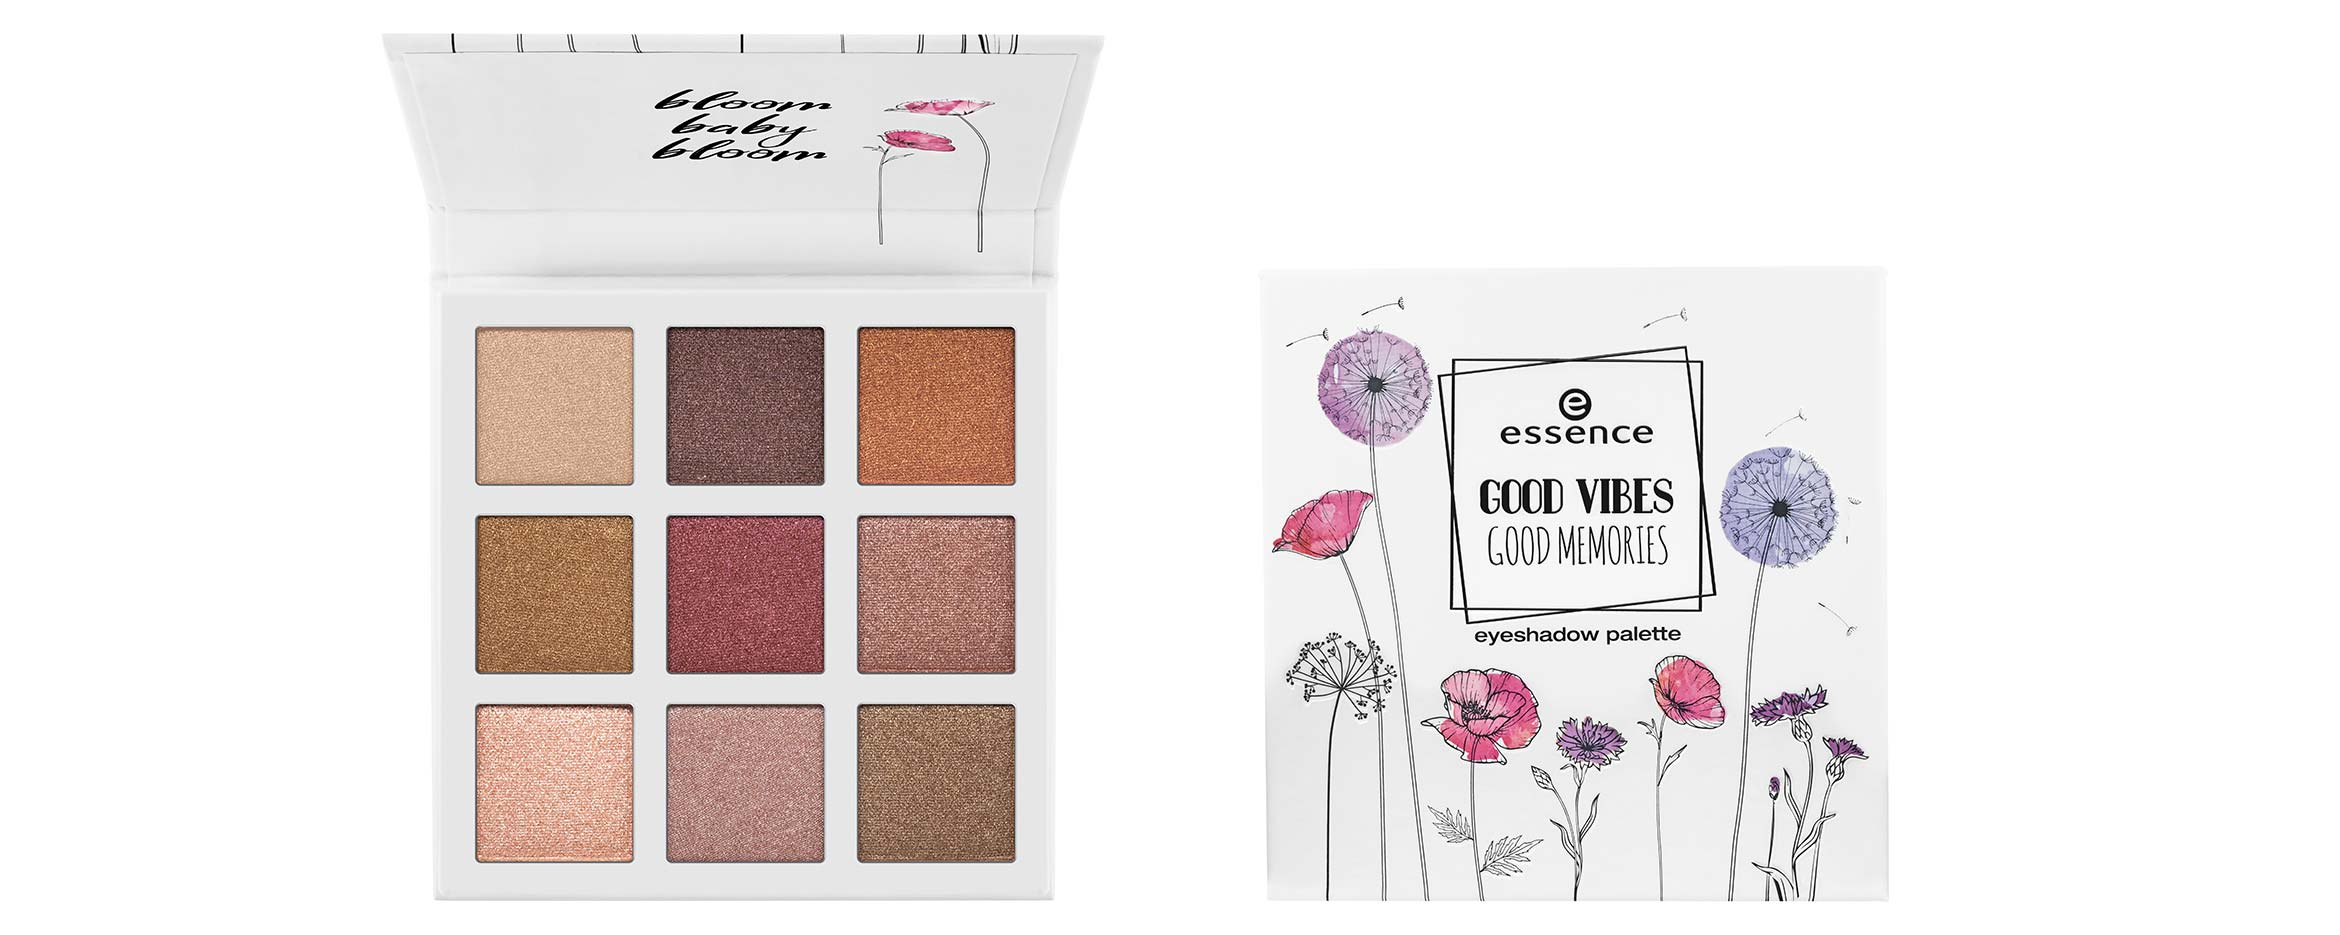 Essence-good-vibes-good-memories-eyeshadow-palette